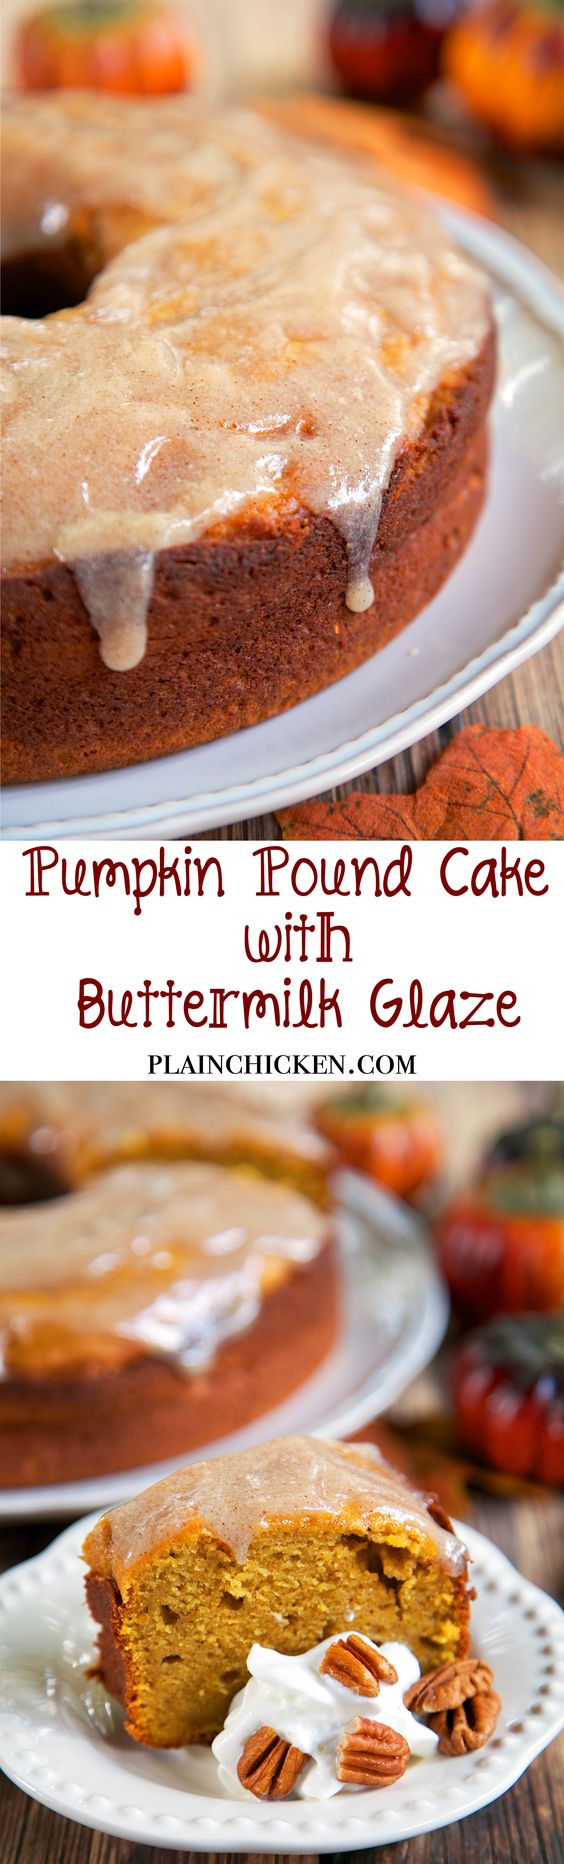 Pumpkin Pound Cake with Buttermilk Glaze - The perfect Fall dessert. I took this to a holiday party and it was a huge hit! Everyone asked for the recipe! This is definitely going on our Thanksgiving menu!